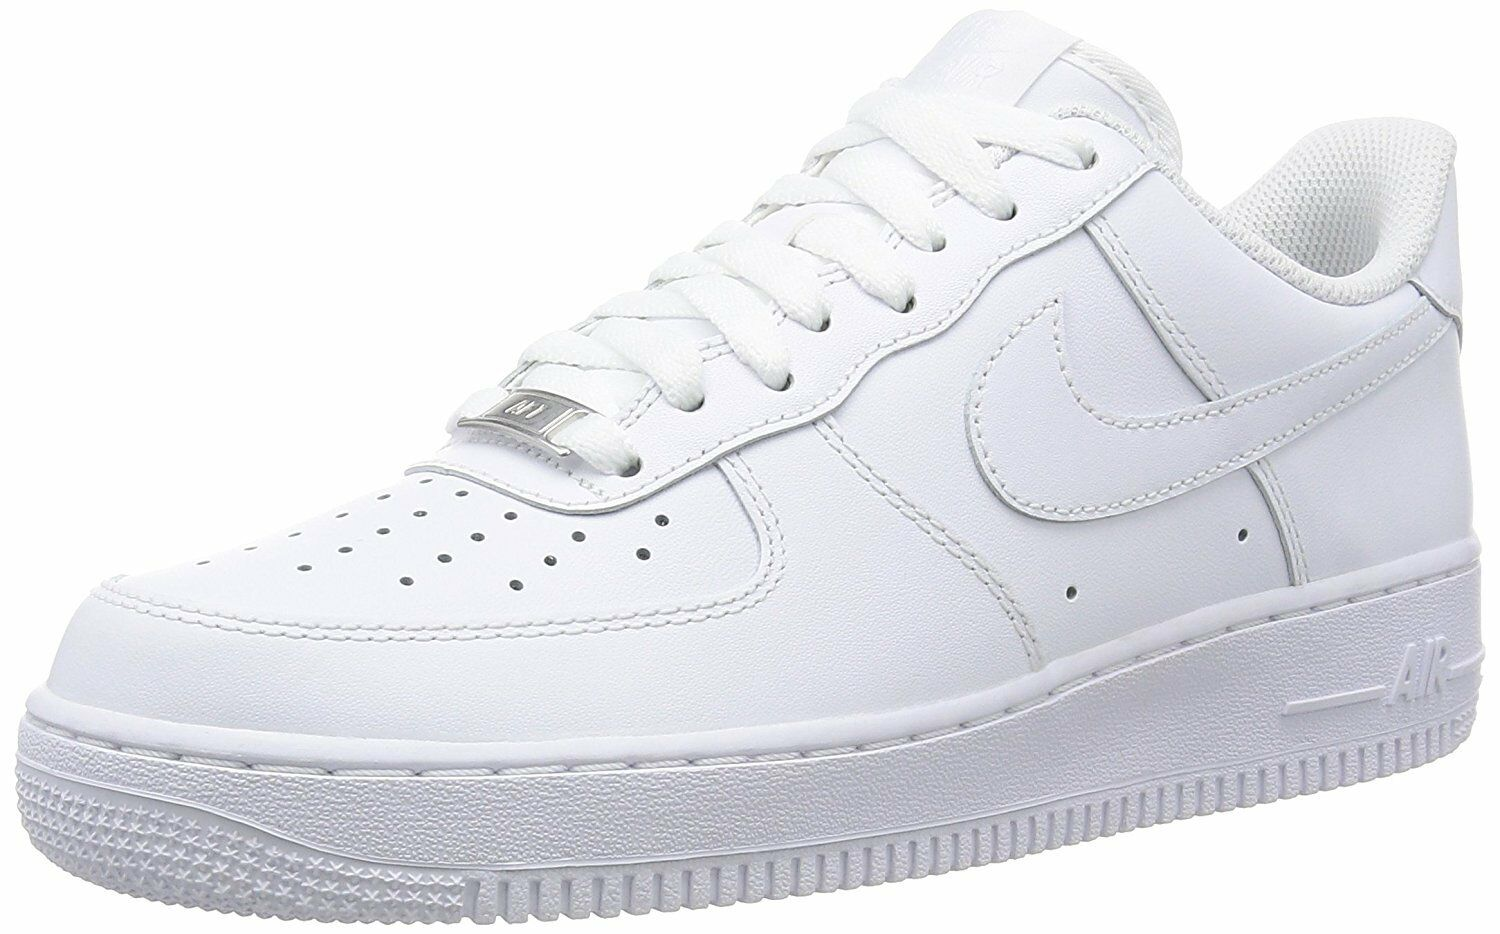 Nike 315122-111: Air Force 1 '07 US Men's Classic White/White Sneaker Wild casual shoes